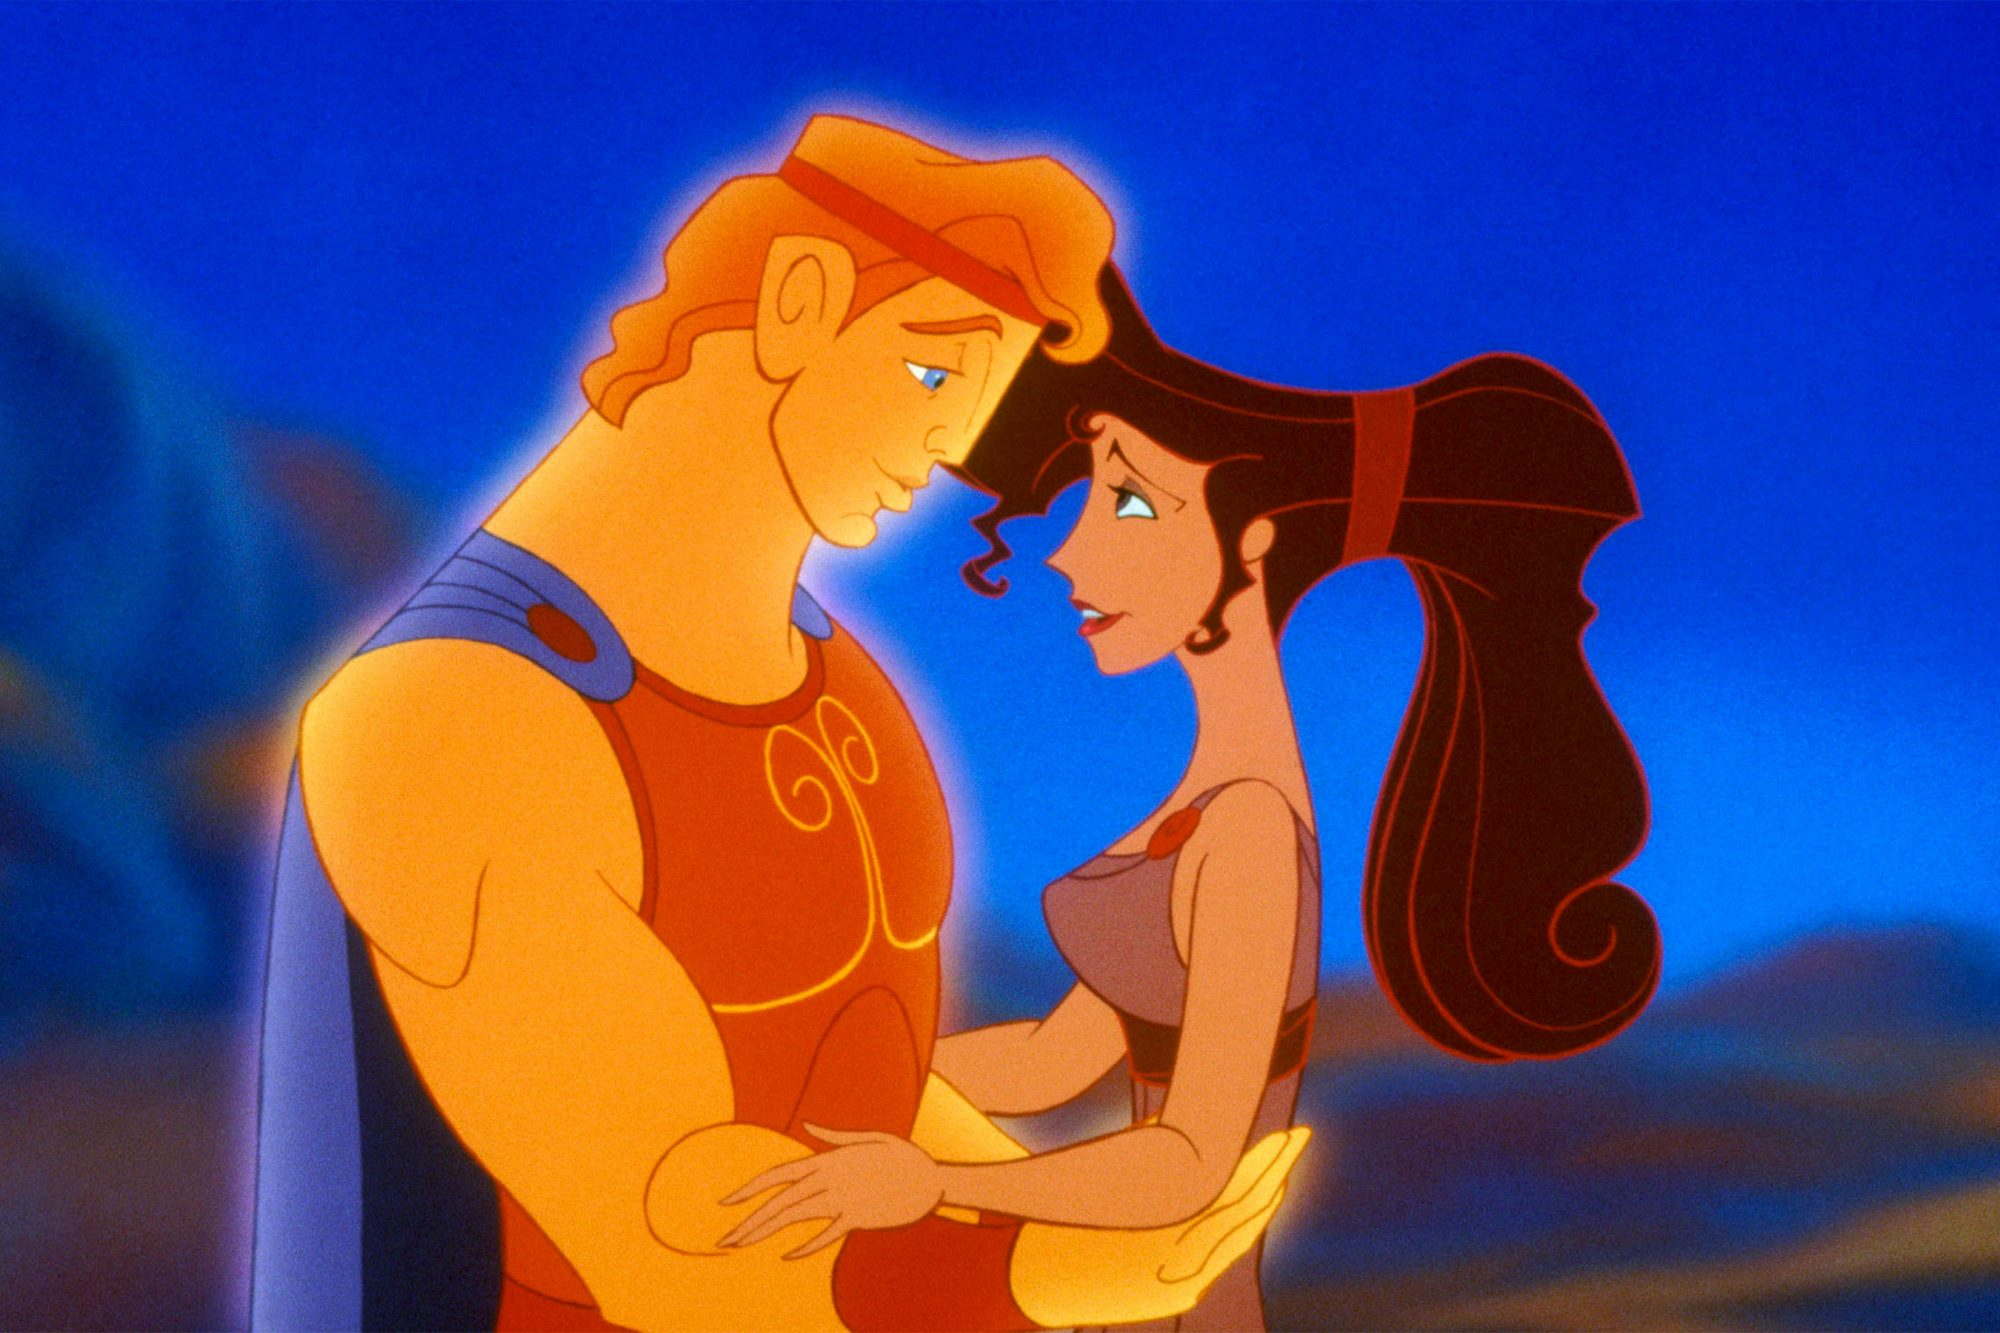 HERCULES, from left: Hercules, Megara, 1997, ©Walt Disney Pictures/courtesy Everett Collection